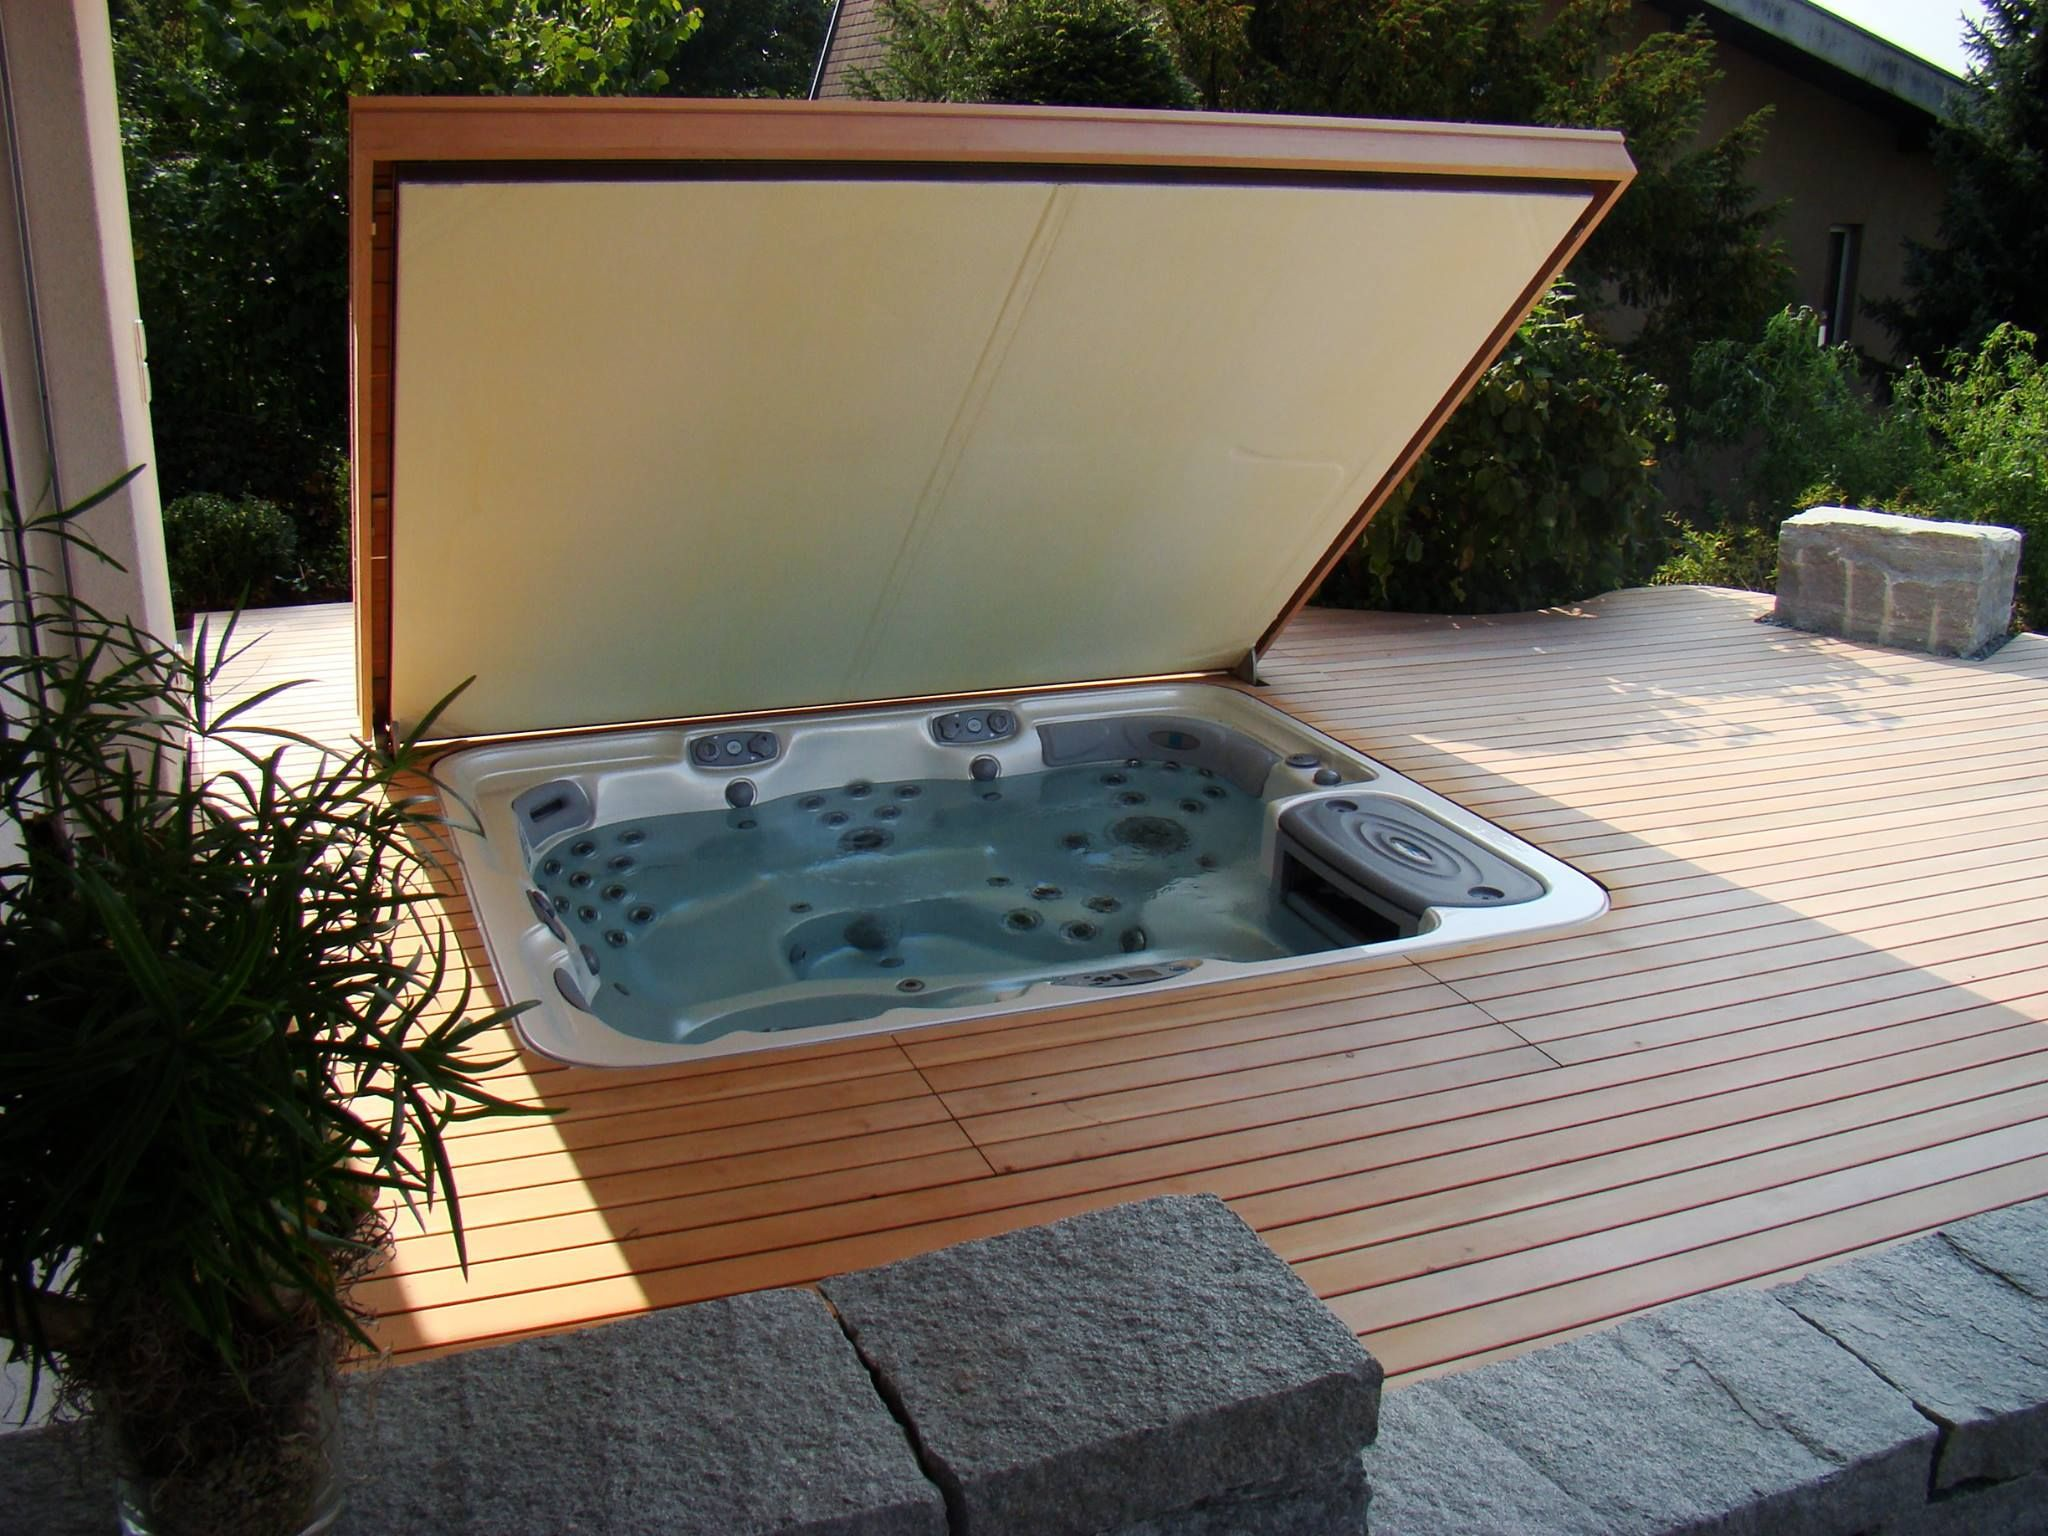 idea outdoor tubs lantern earth hot decorative on heaven designs awesome that stoned floor and divine also pin tub tile are desk with white designed